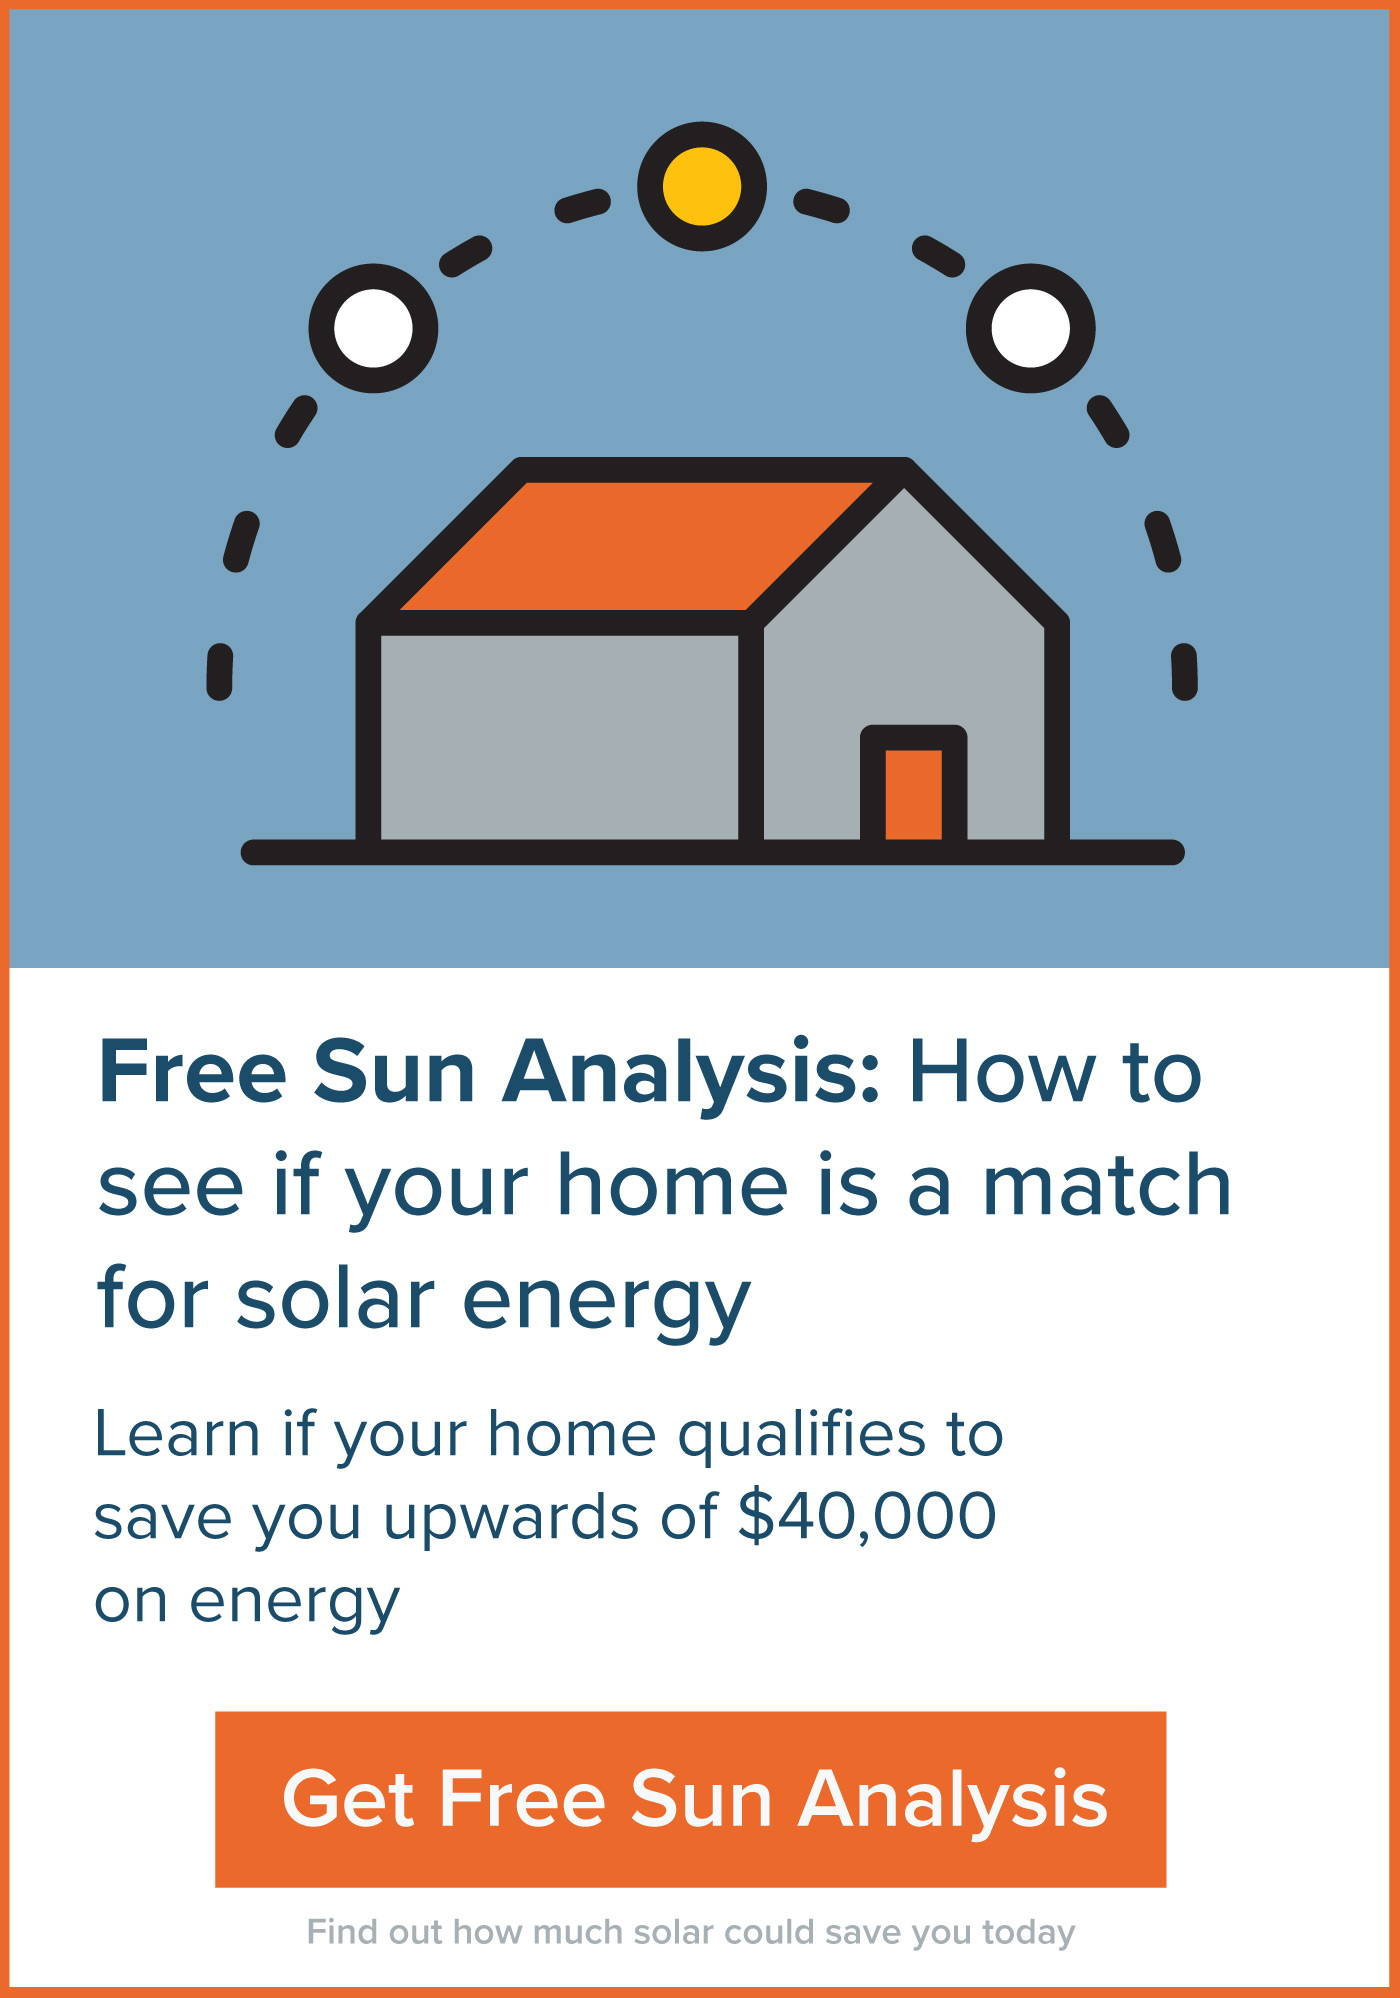 click here to get a free sun analysis